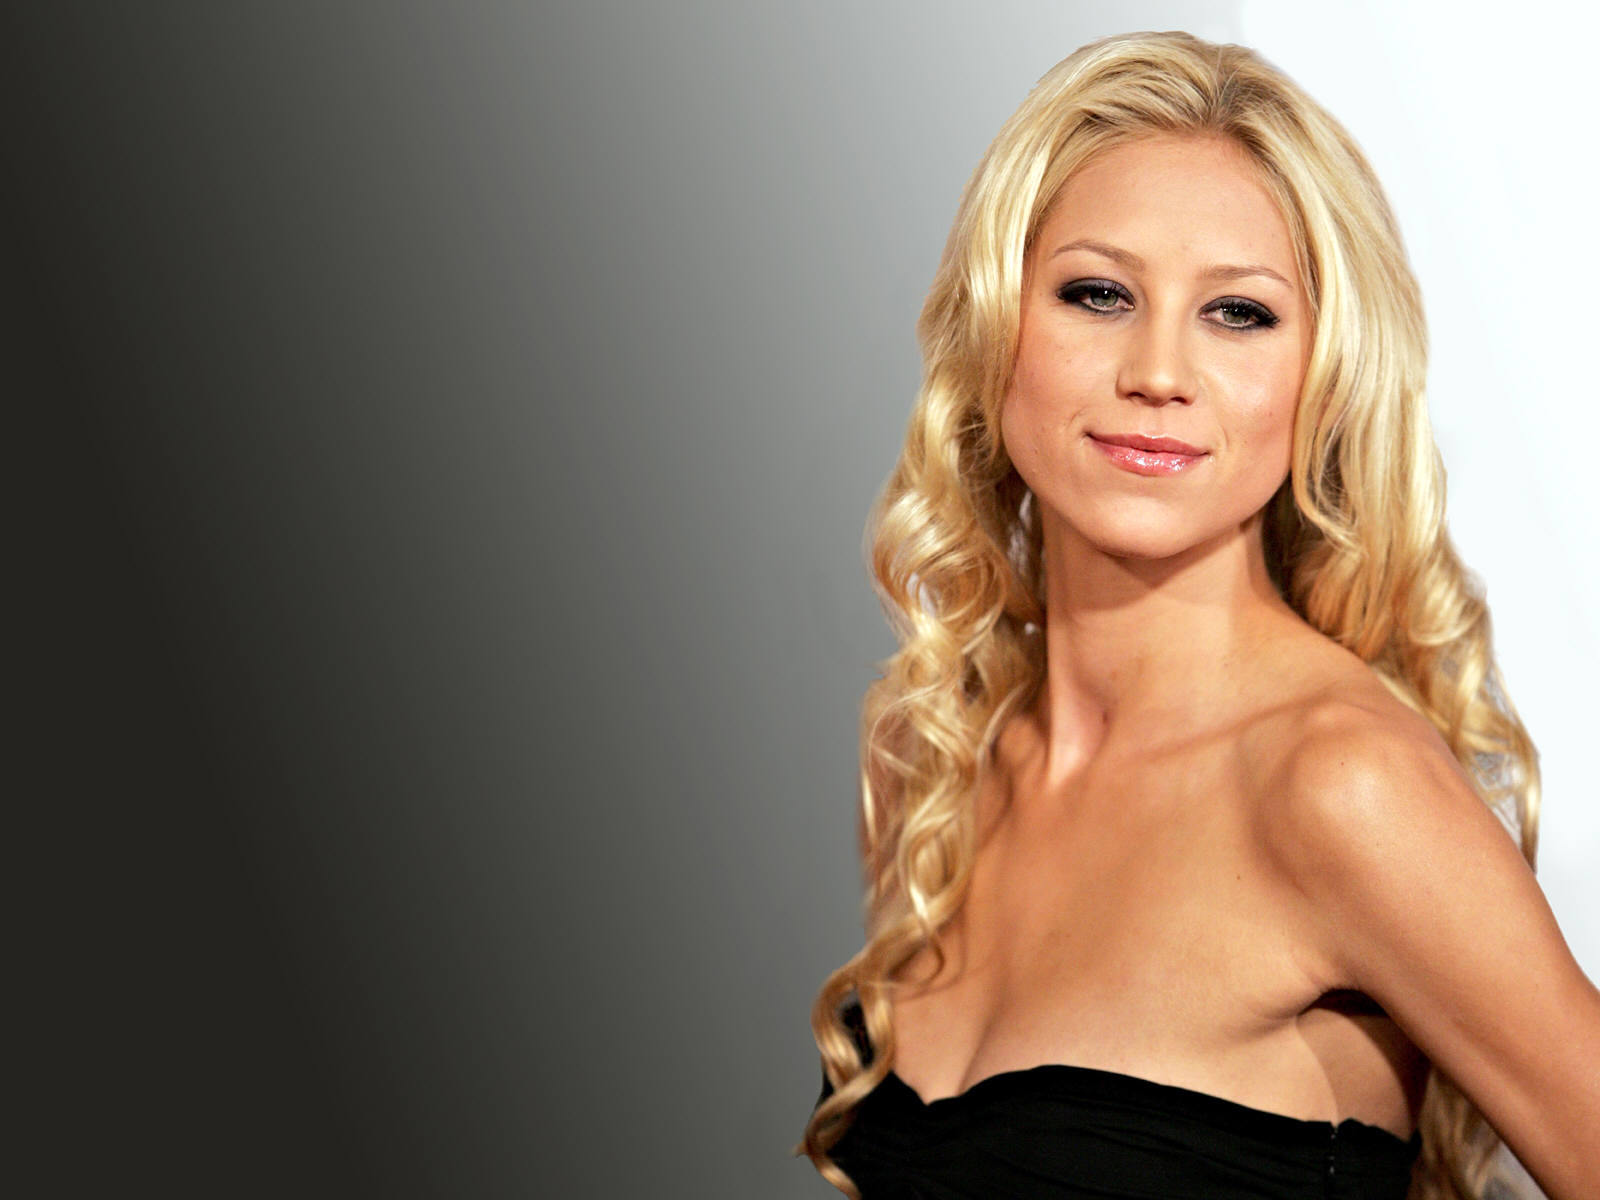 Tennis World: Anna Kournikova New HD Wallpaper 2013 Anna Kurnikova